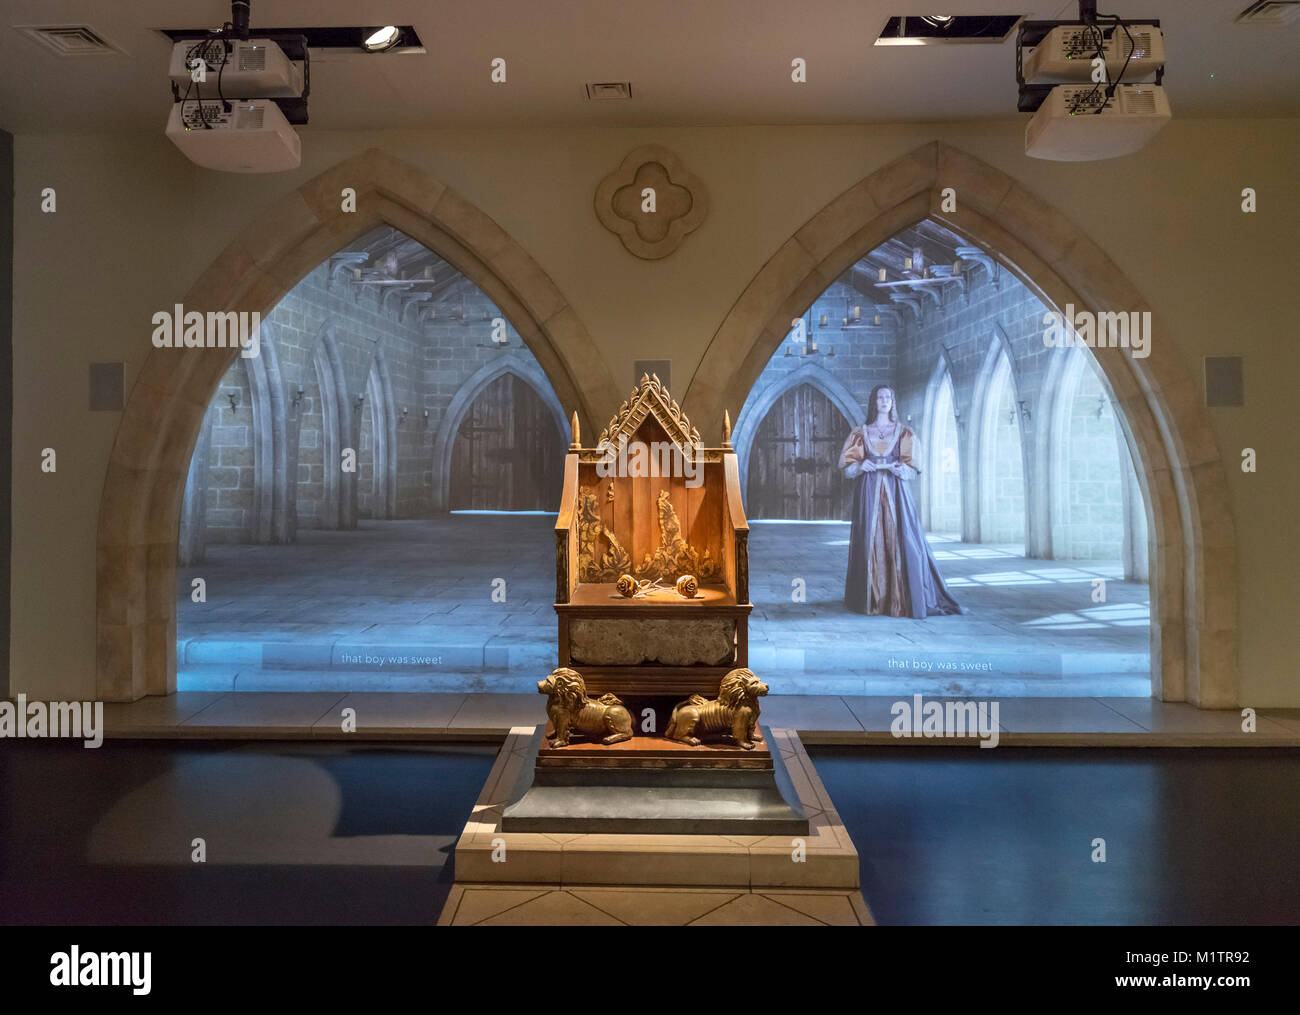 Display in the King Richard III Visitor Centre, Leicester, England, UK - Stock Image